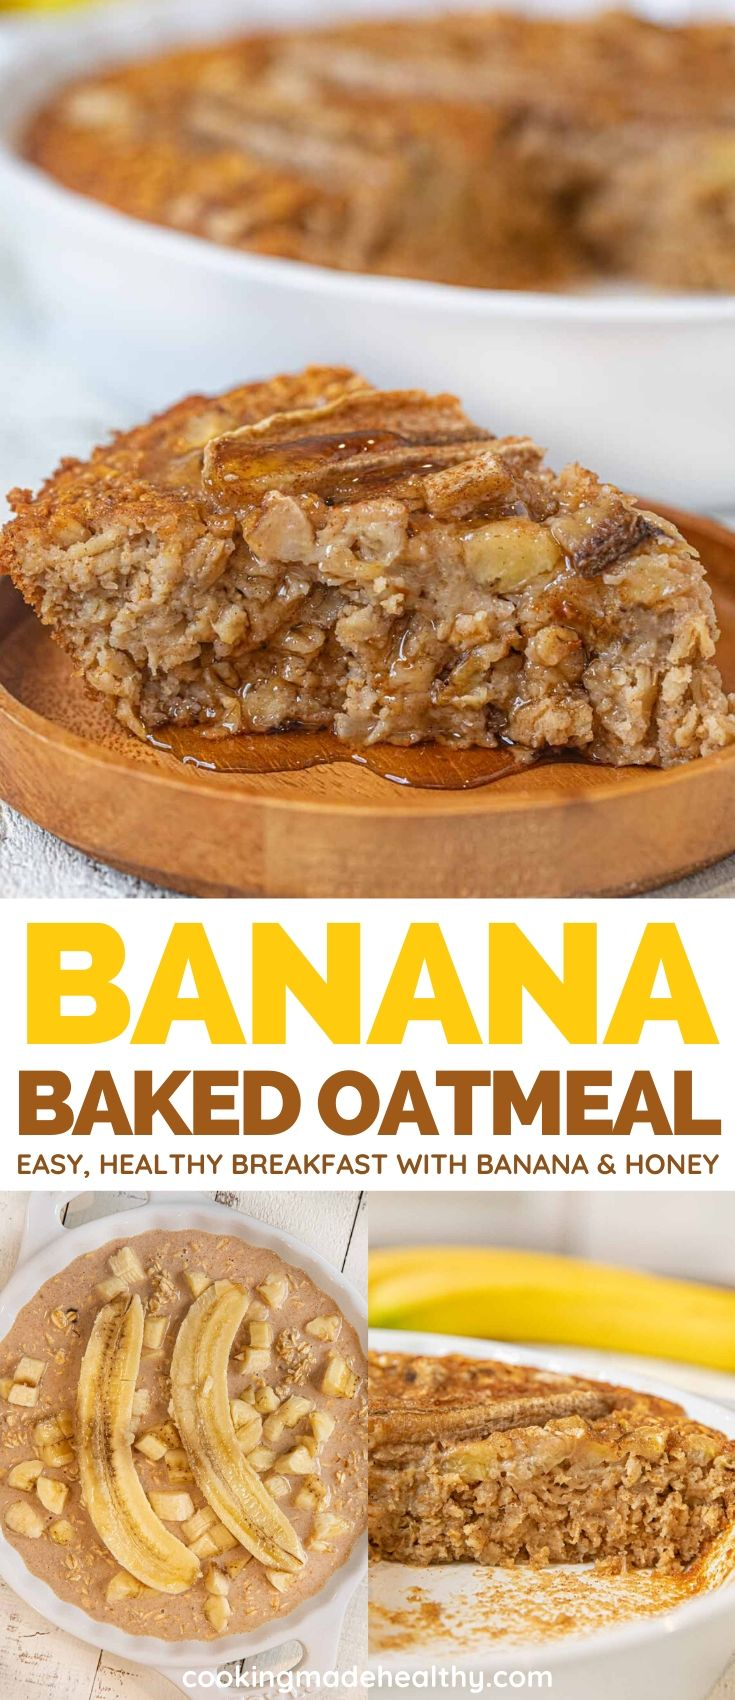 Banana Baked Oatmeal before and after it's baked.